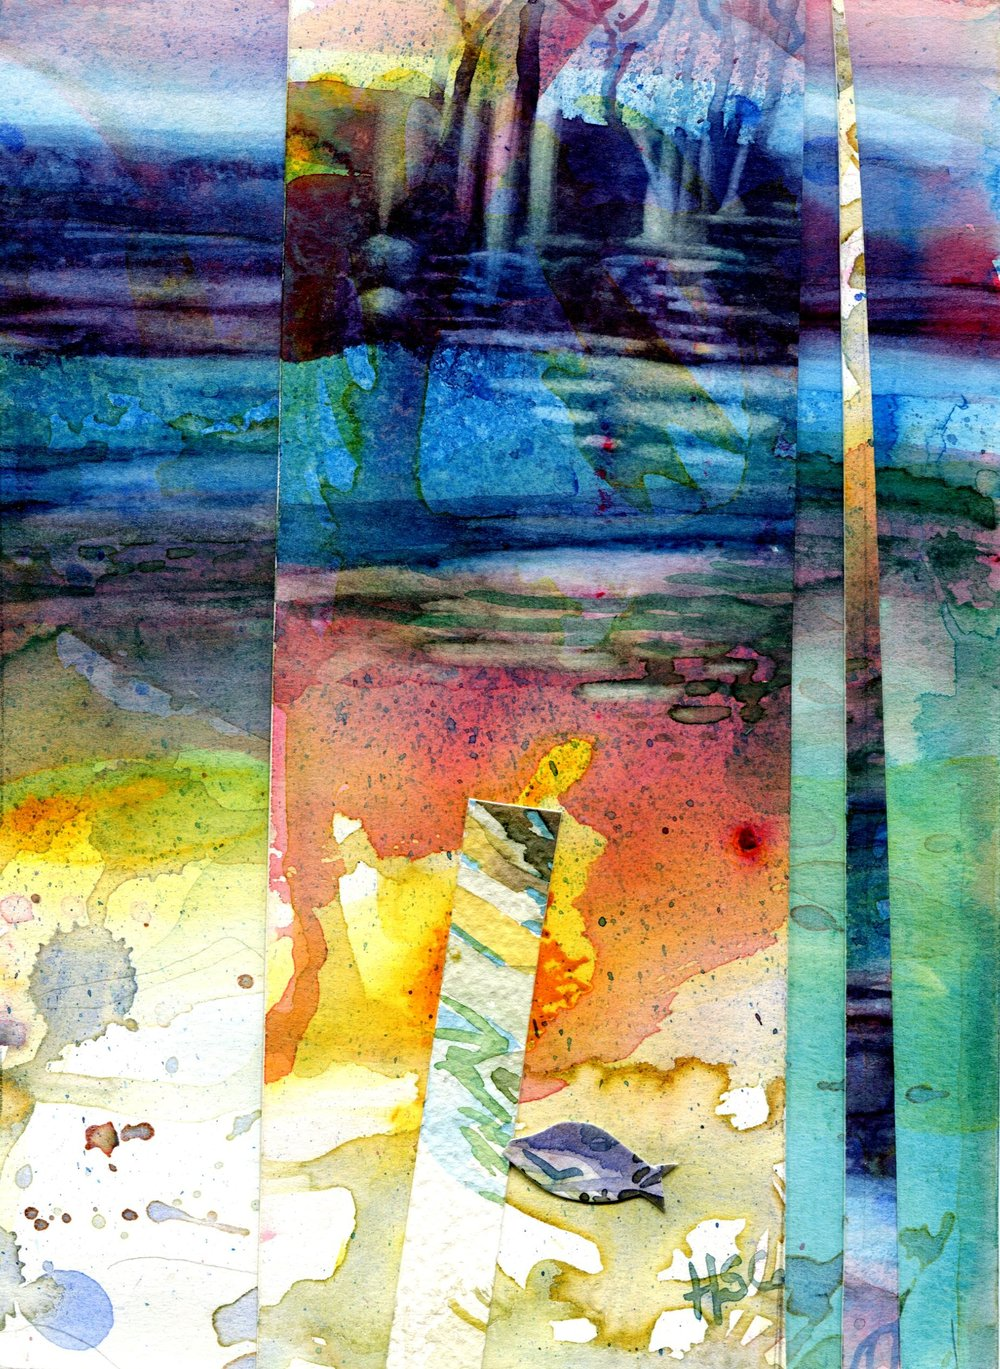 36B HERMINE SPIES-COLEMAN, SUBMERGED 1, WATERCOLOUR ON PAPER